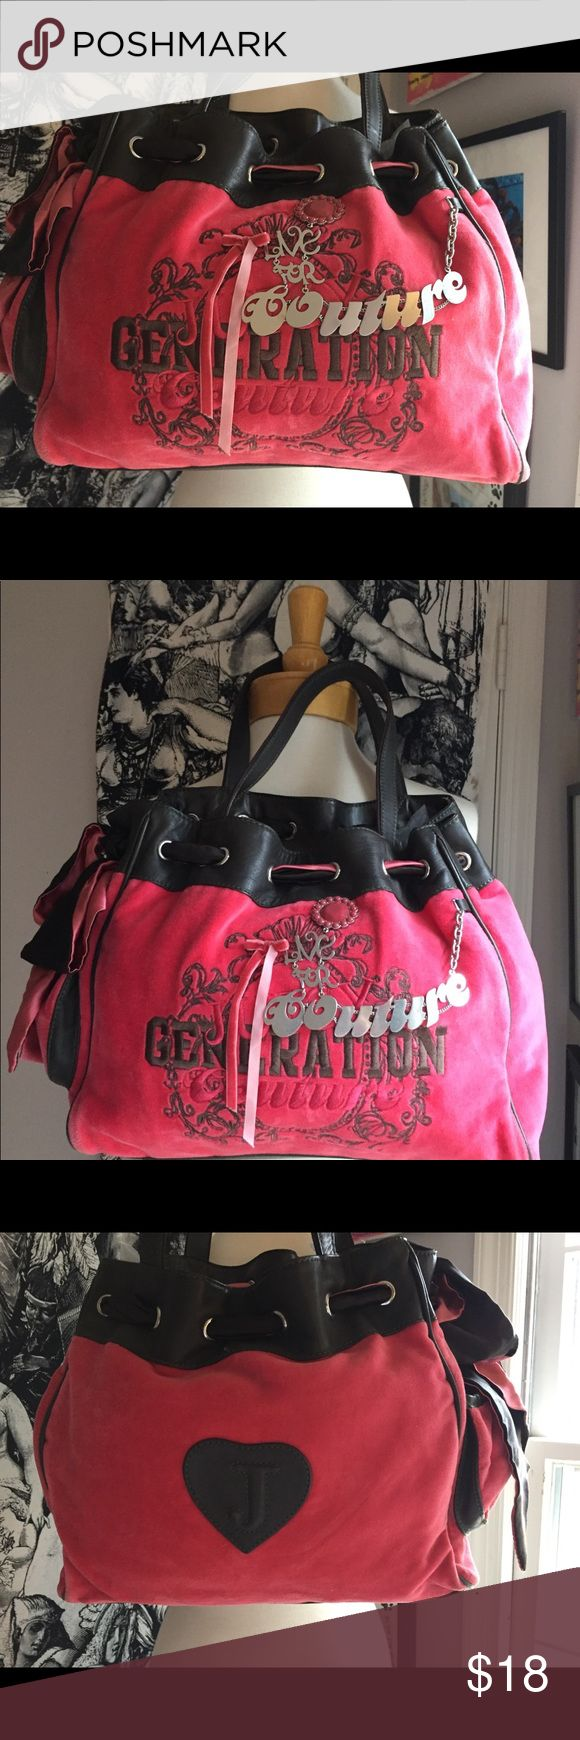 """Juicy Couture Daydreamer Generation Bag PRICE IS FIRM!!   100% authentic. Excellent condition. Minimal wear. Outside Silver-tone detailing """"LIVE FOR COUTURE"""" Juicy Couture Bags Satchels"""